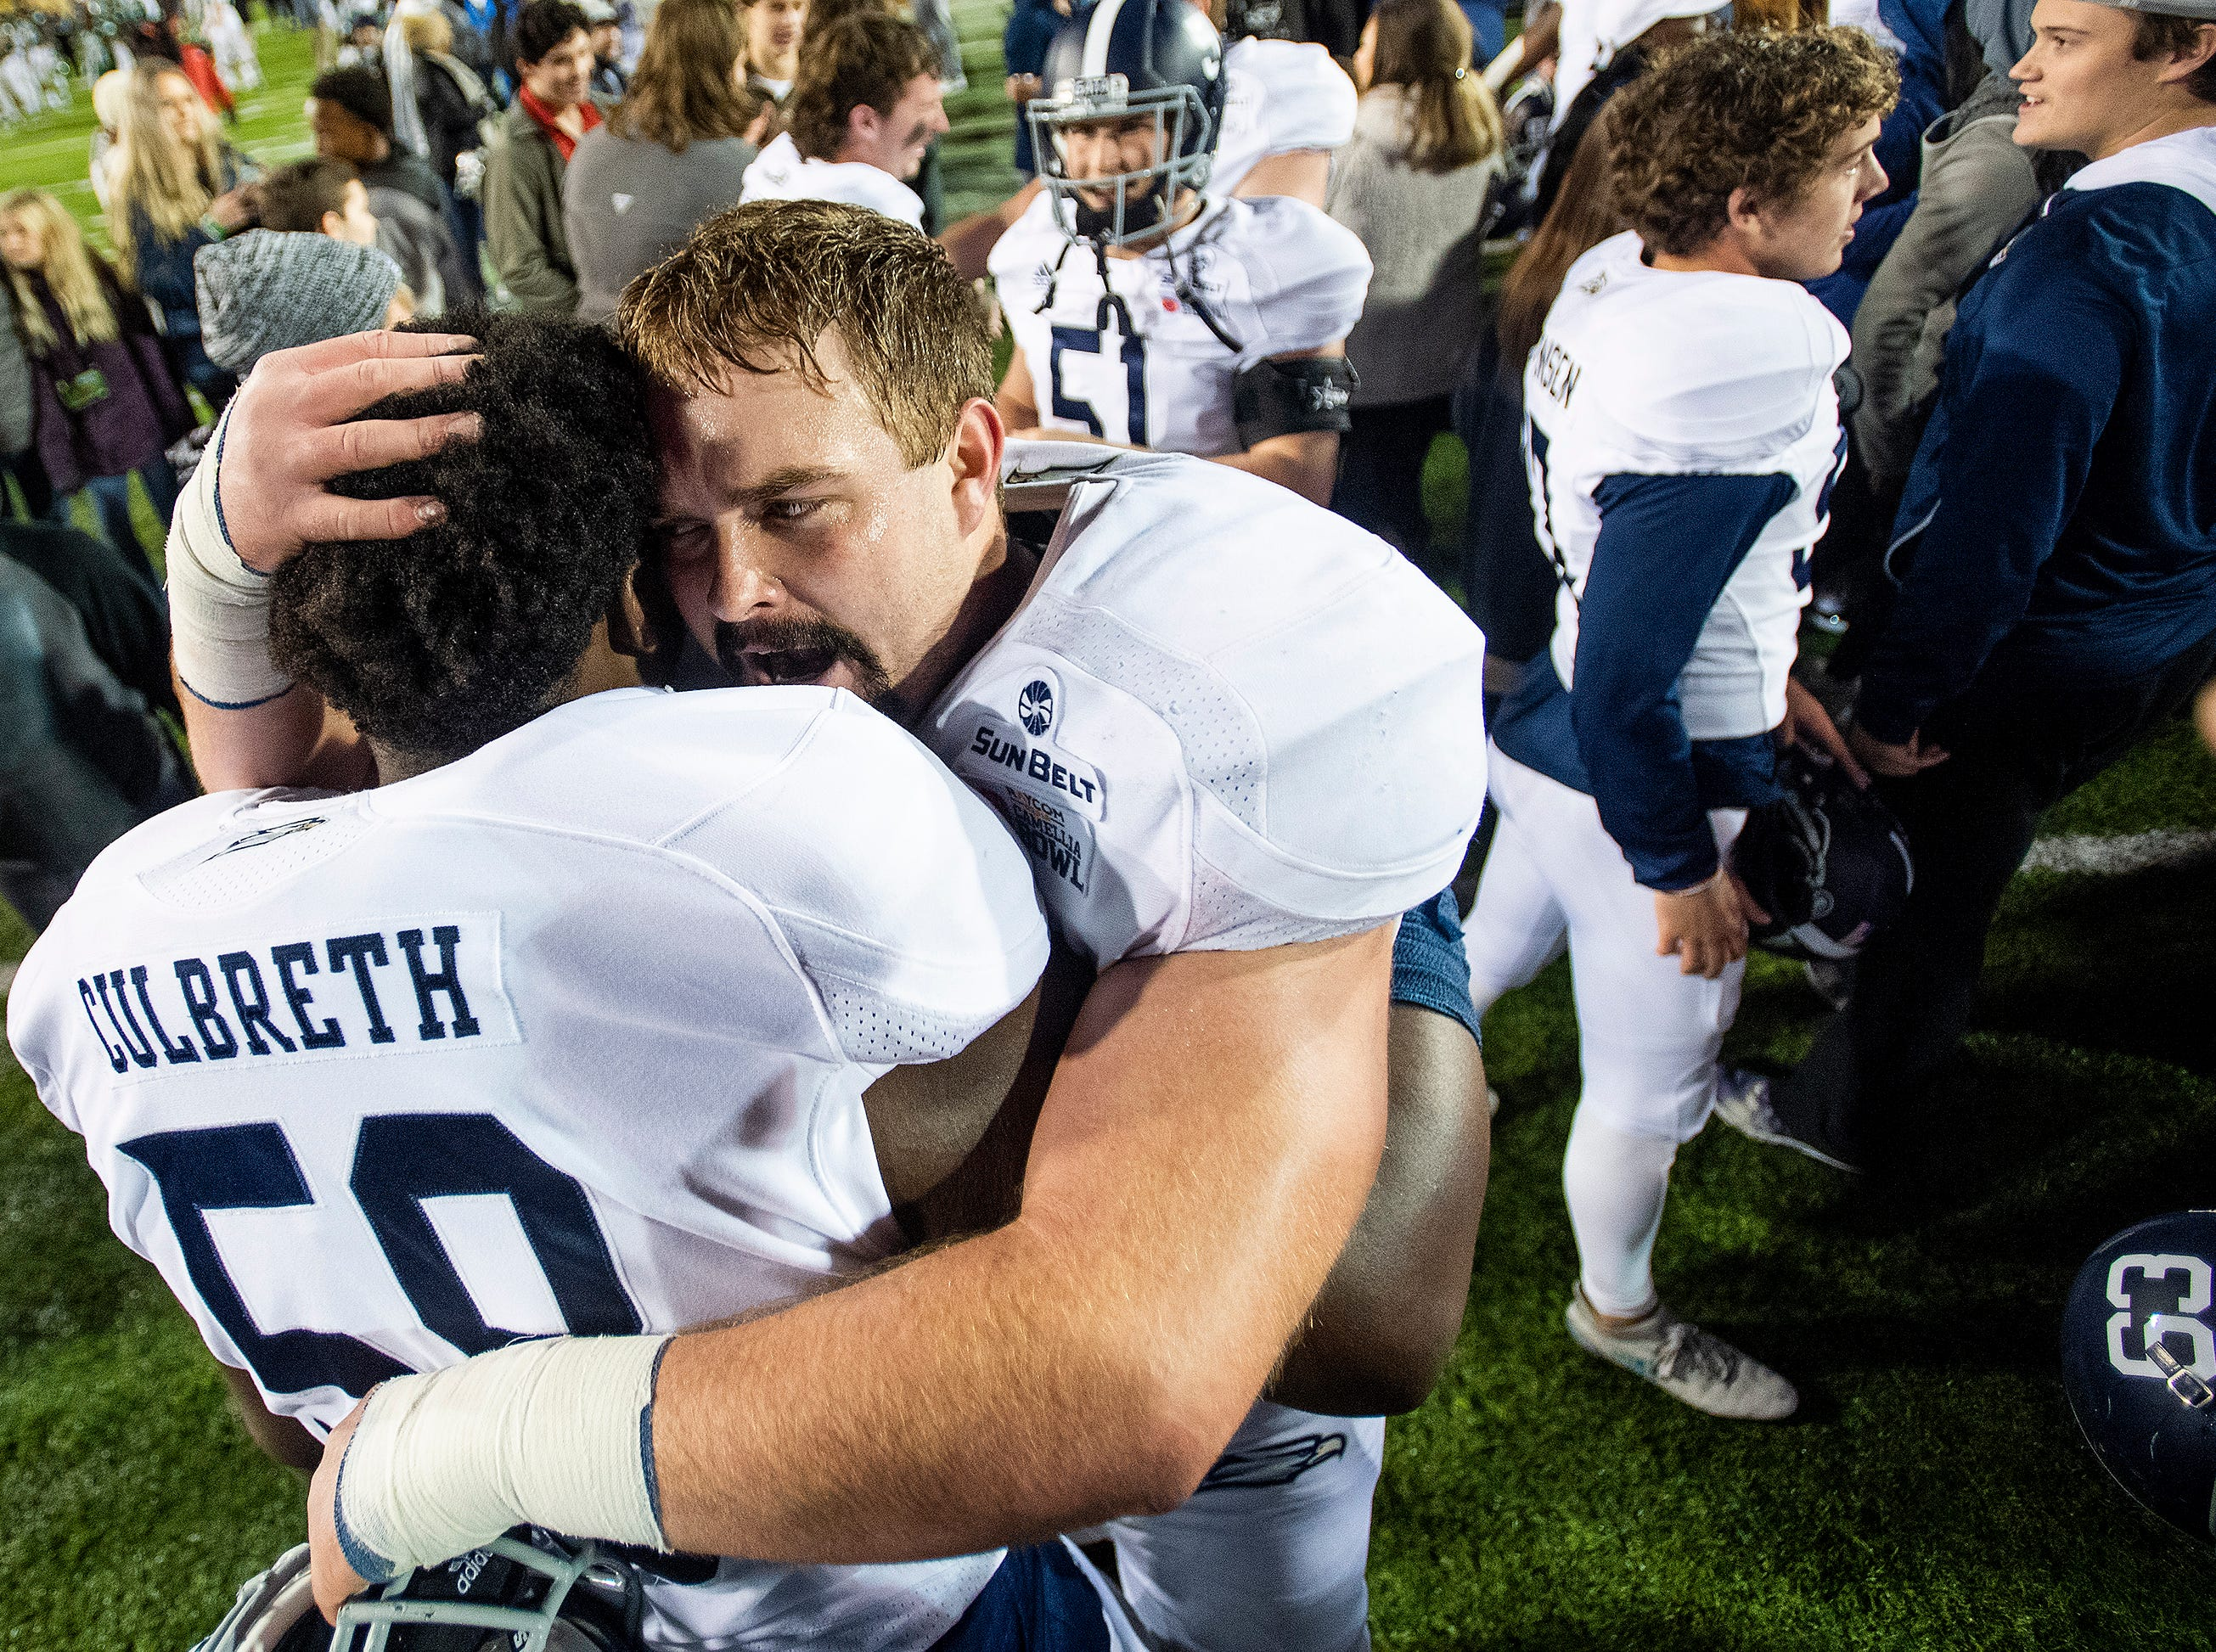 Georgia Southern offensive linemen Jeremiah Culbreth (58)  and Jake Edwards (66) hug after defeating Eastern Michigan in the Raycom Media  Camellia Bowl held at Cramton Bowl in Montgomery, Ala., on Saturday December 15, 2018.